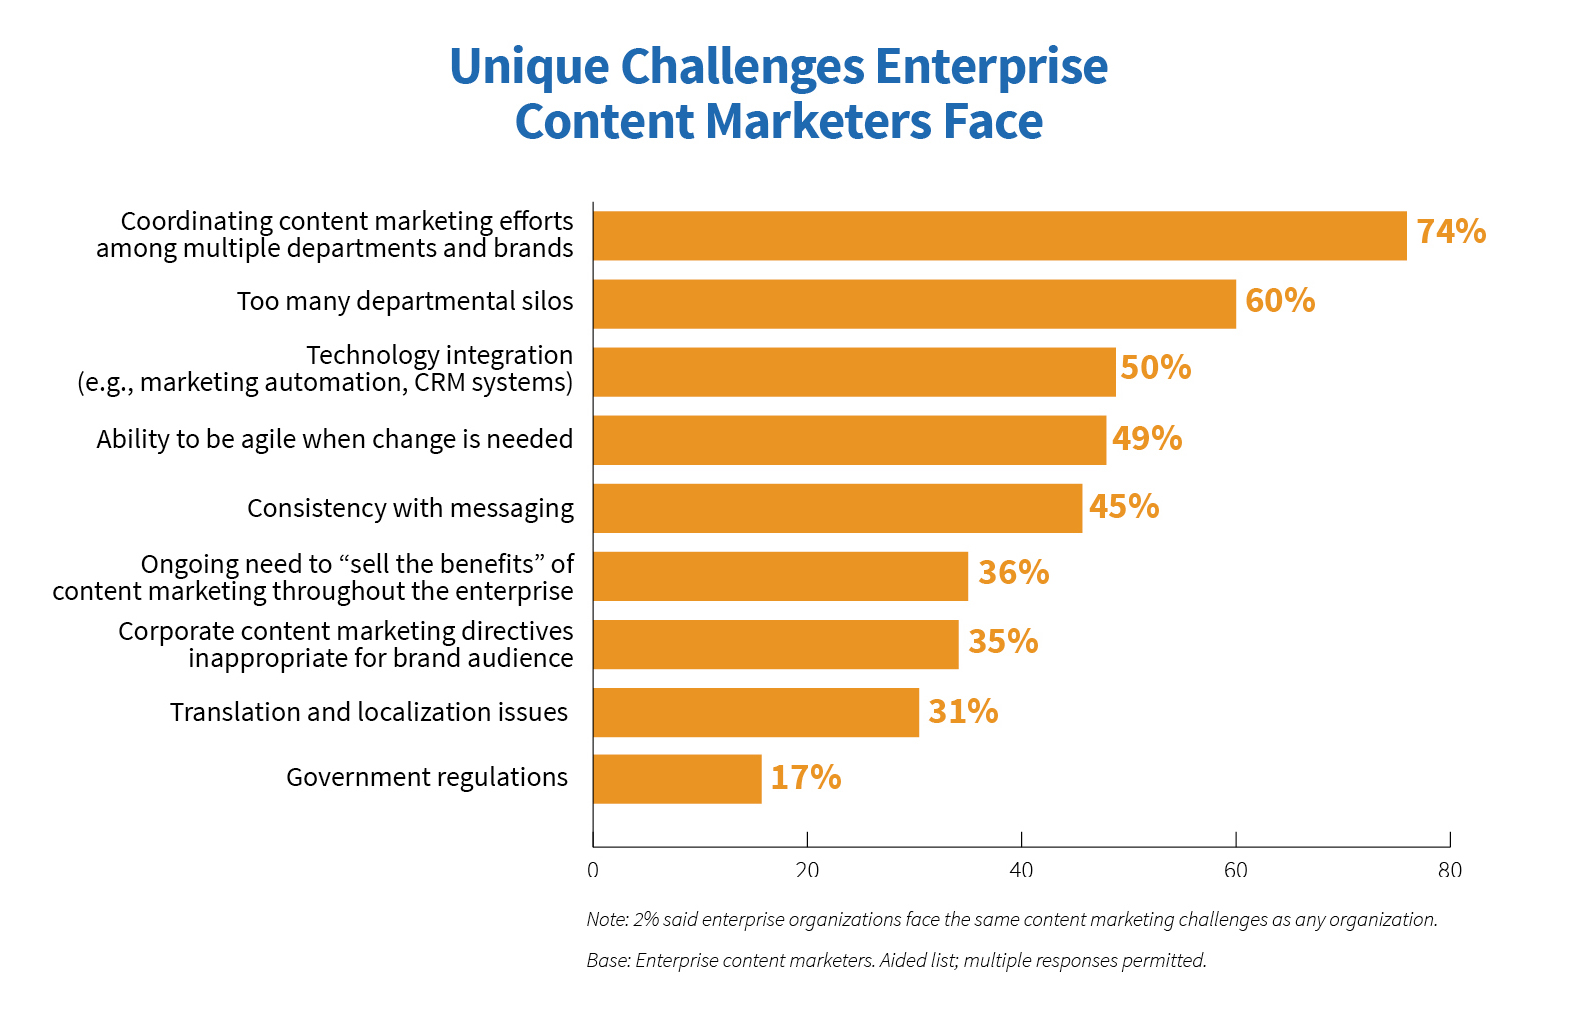 Unique challenges enterprise content marketers face